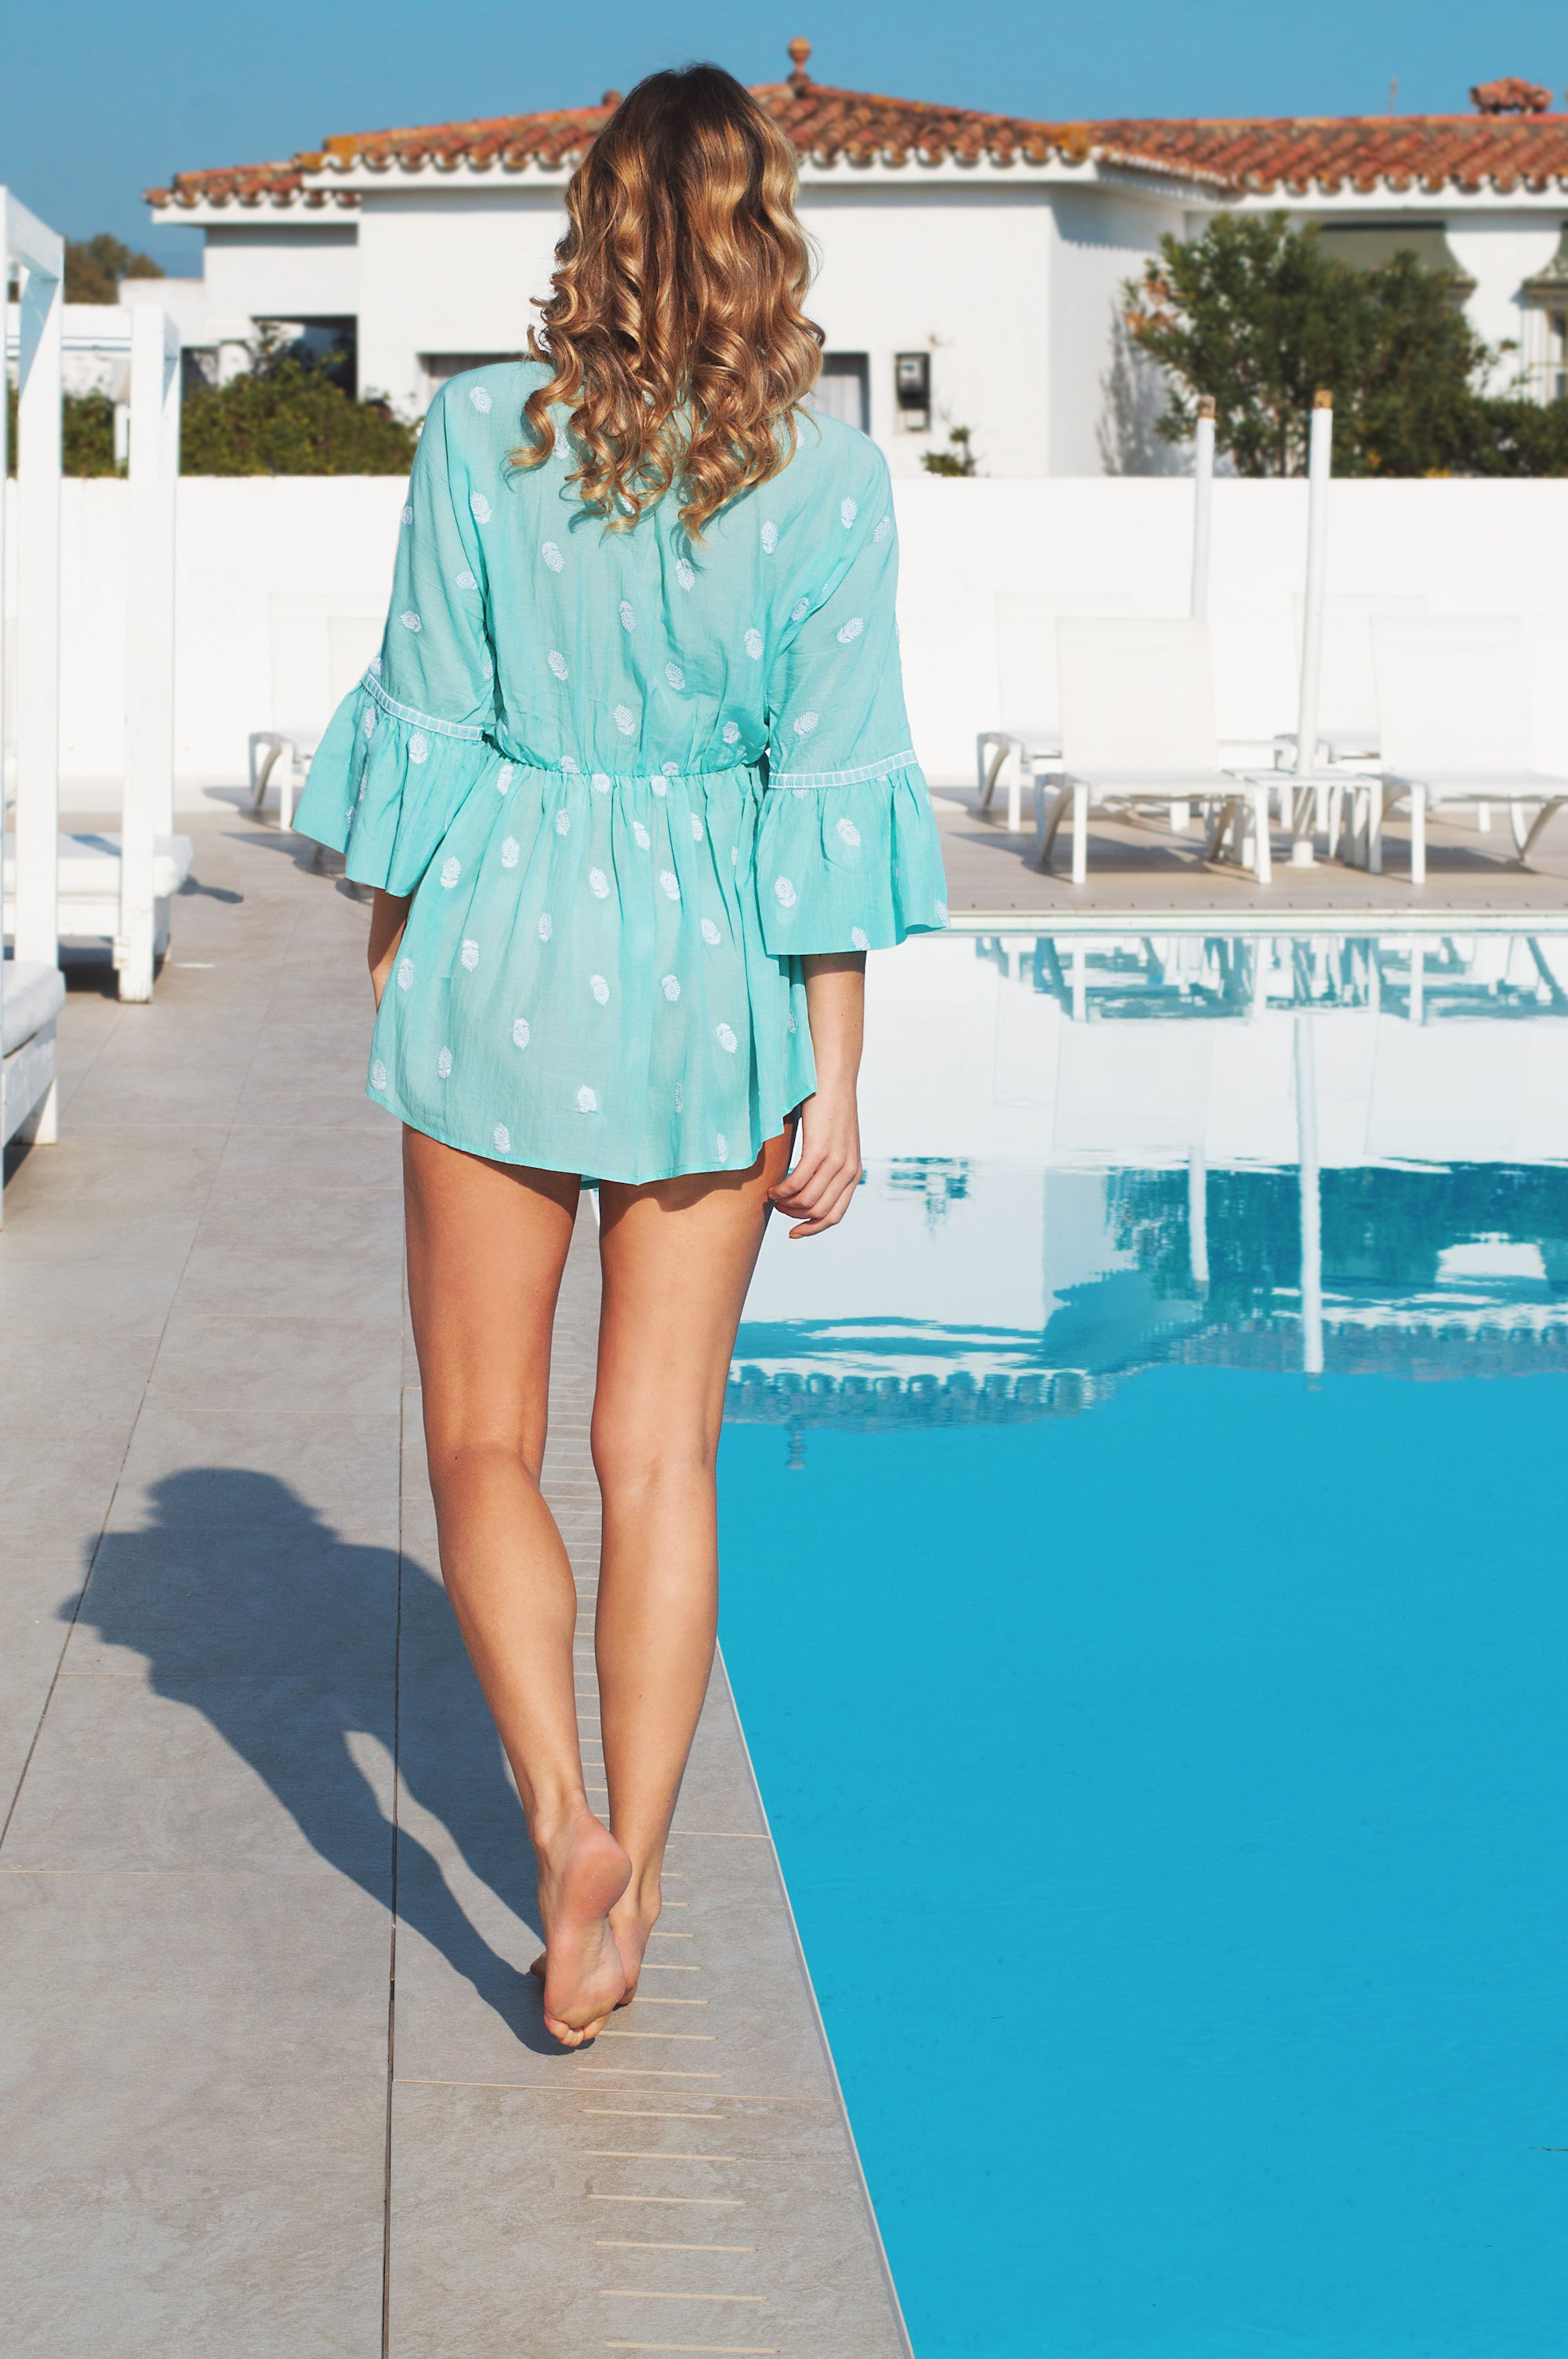 Marbella designer kaftan cotton top/ beach cover up - Guilty Beach